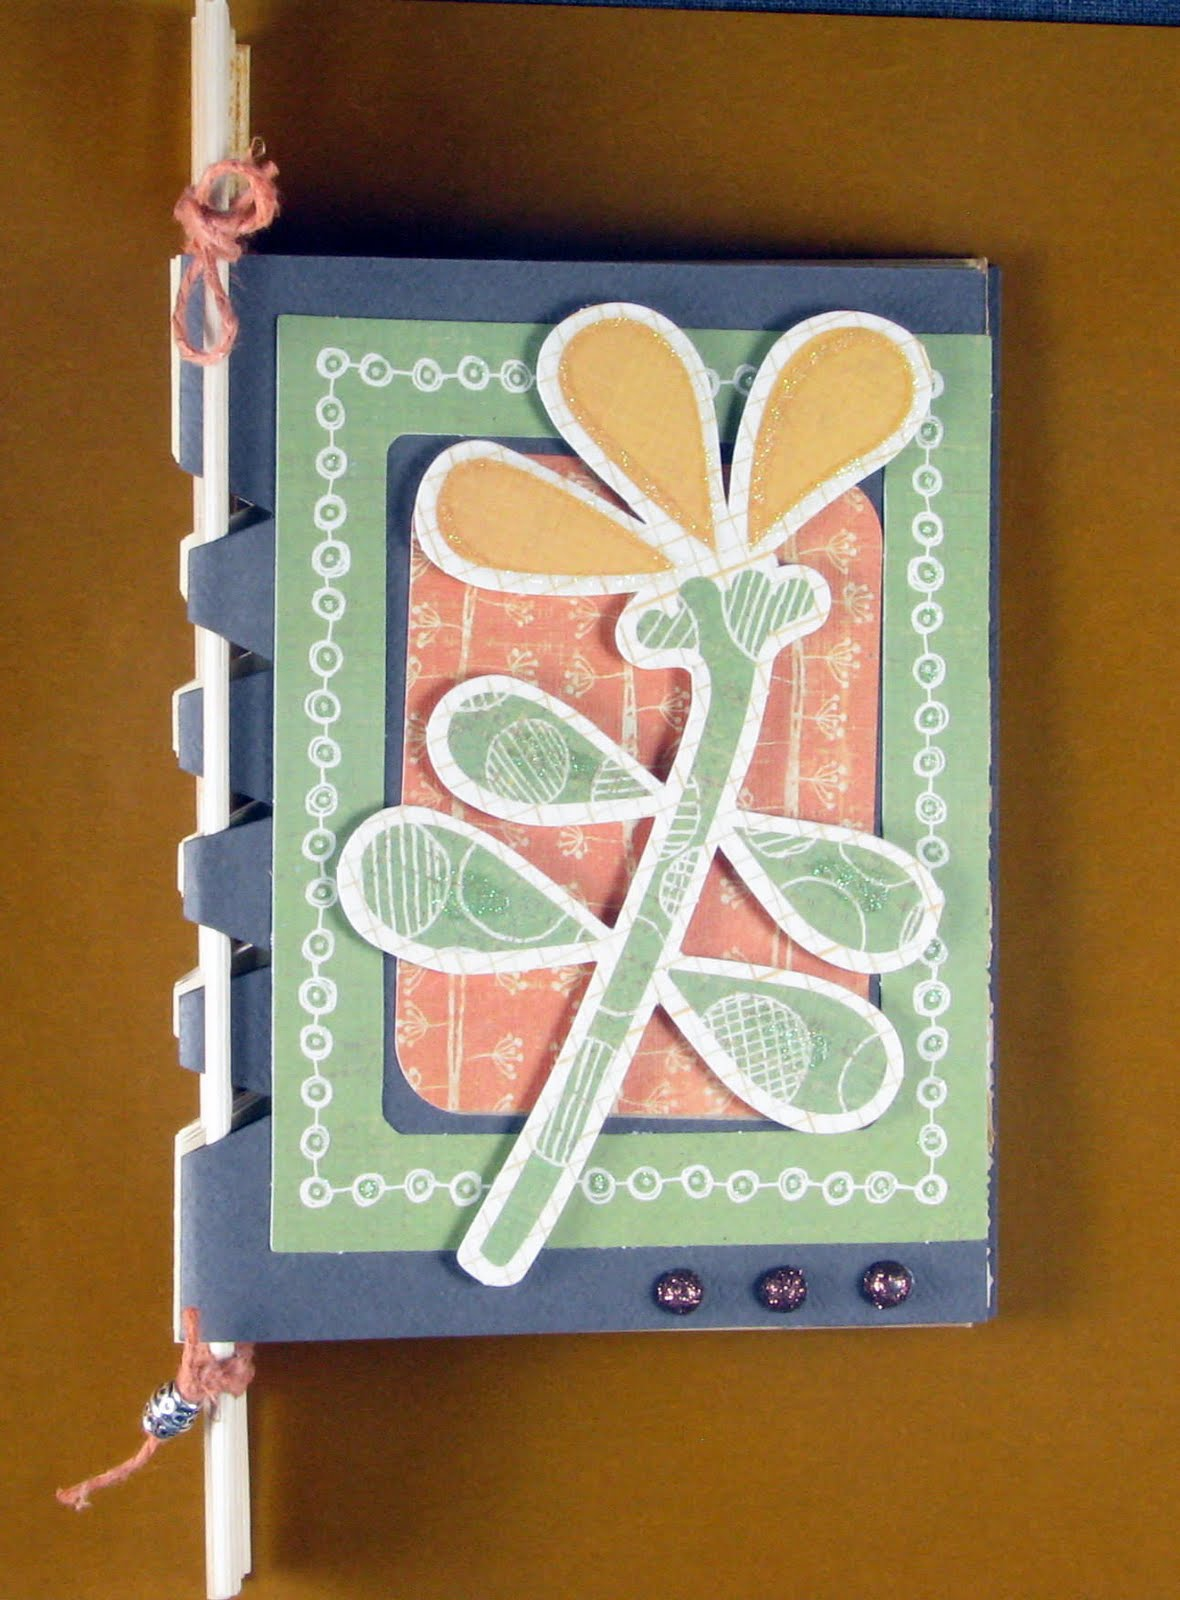 Handmade Skewer Book